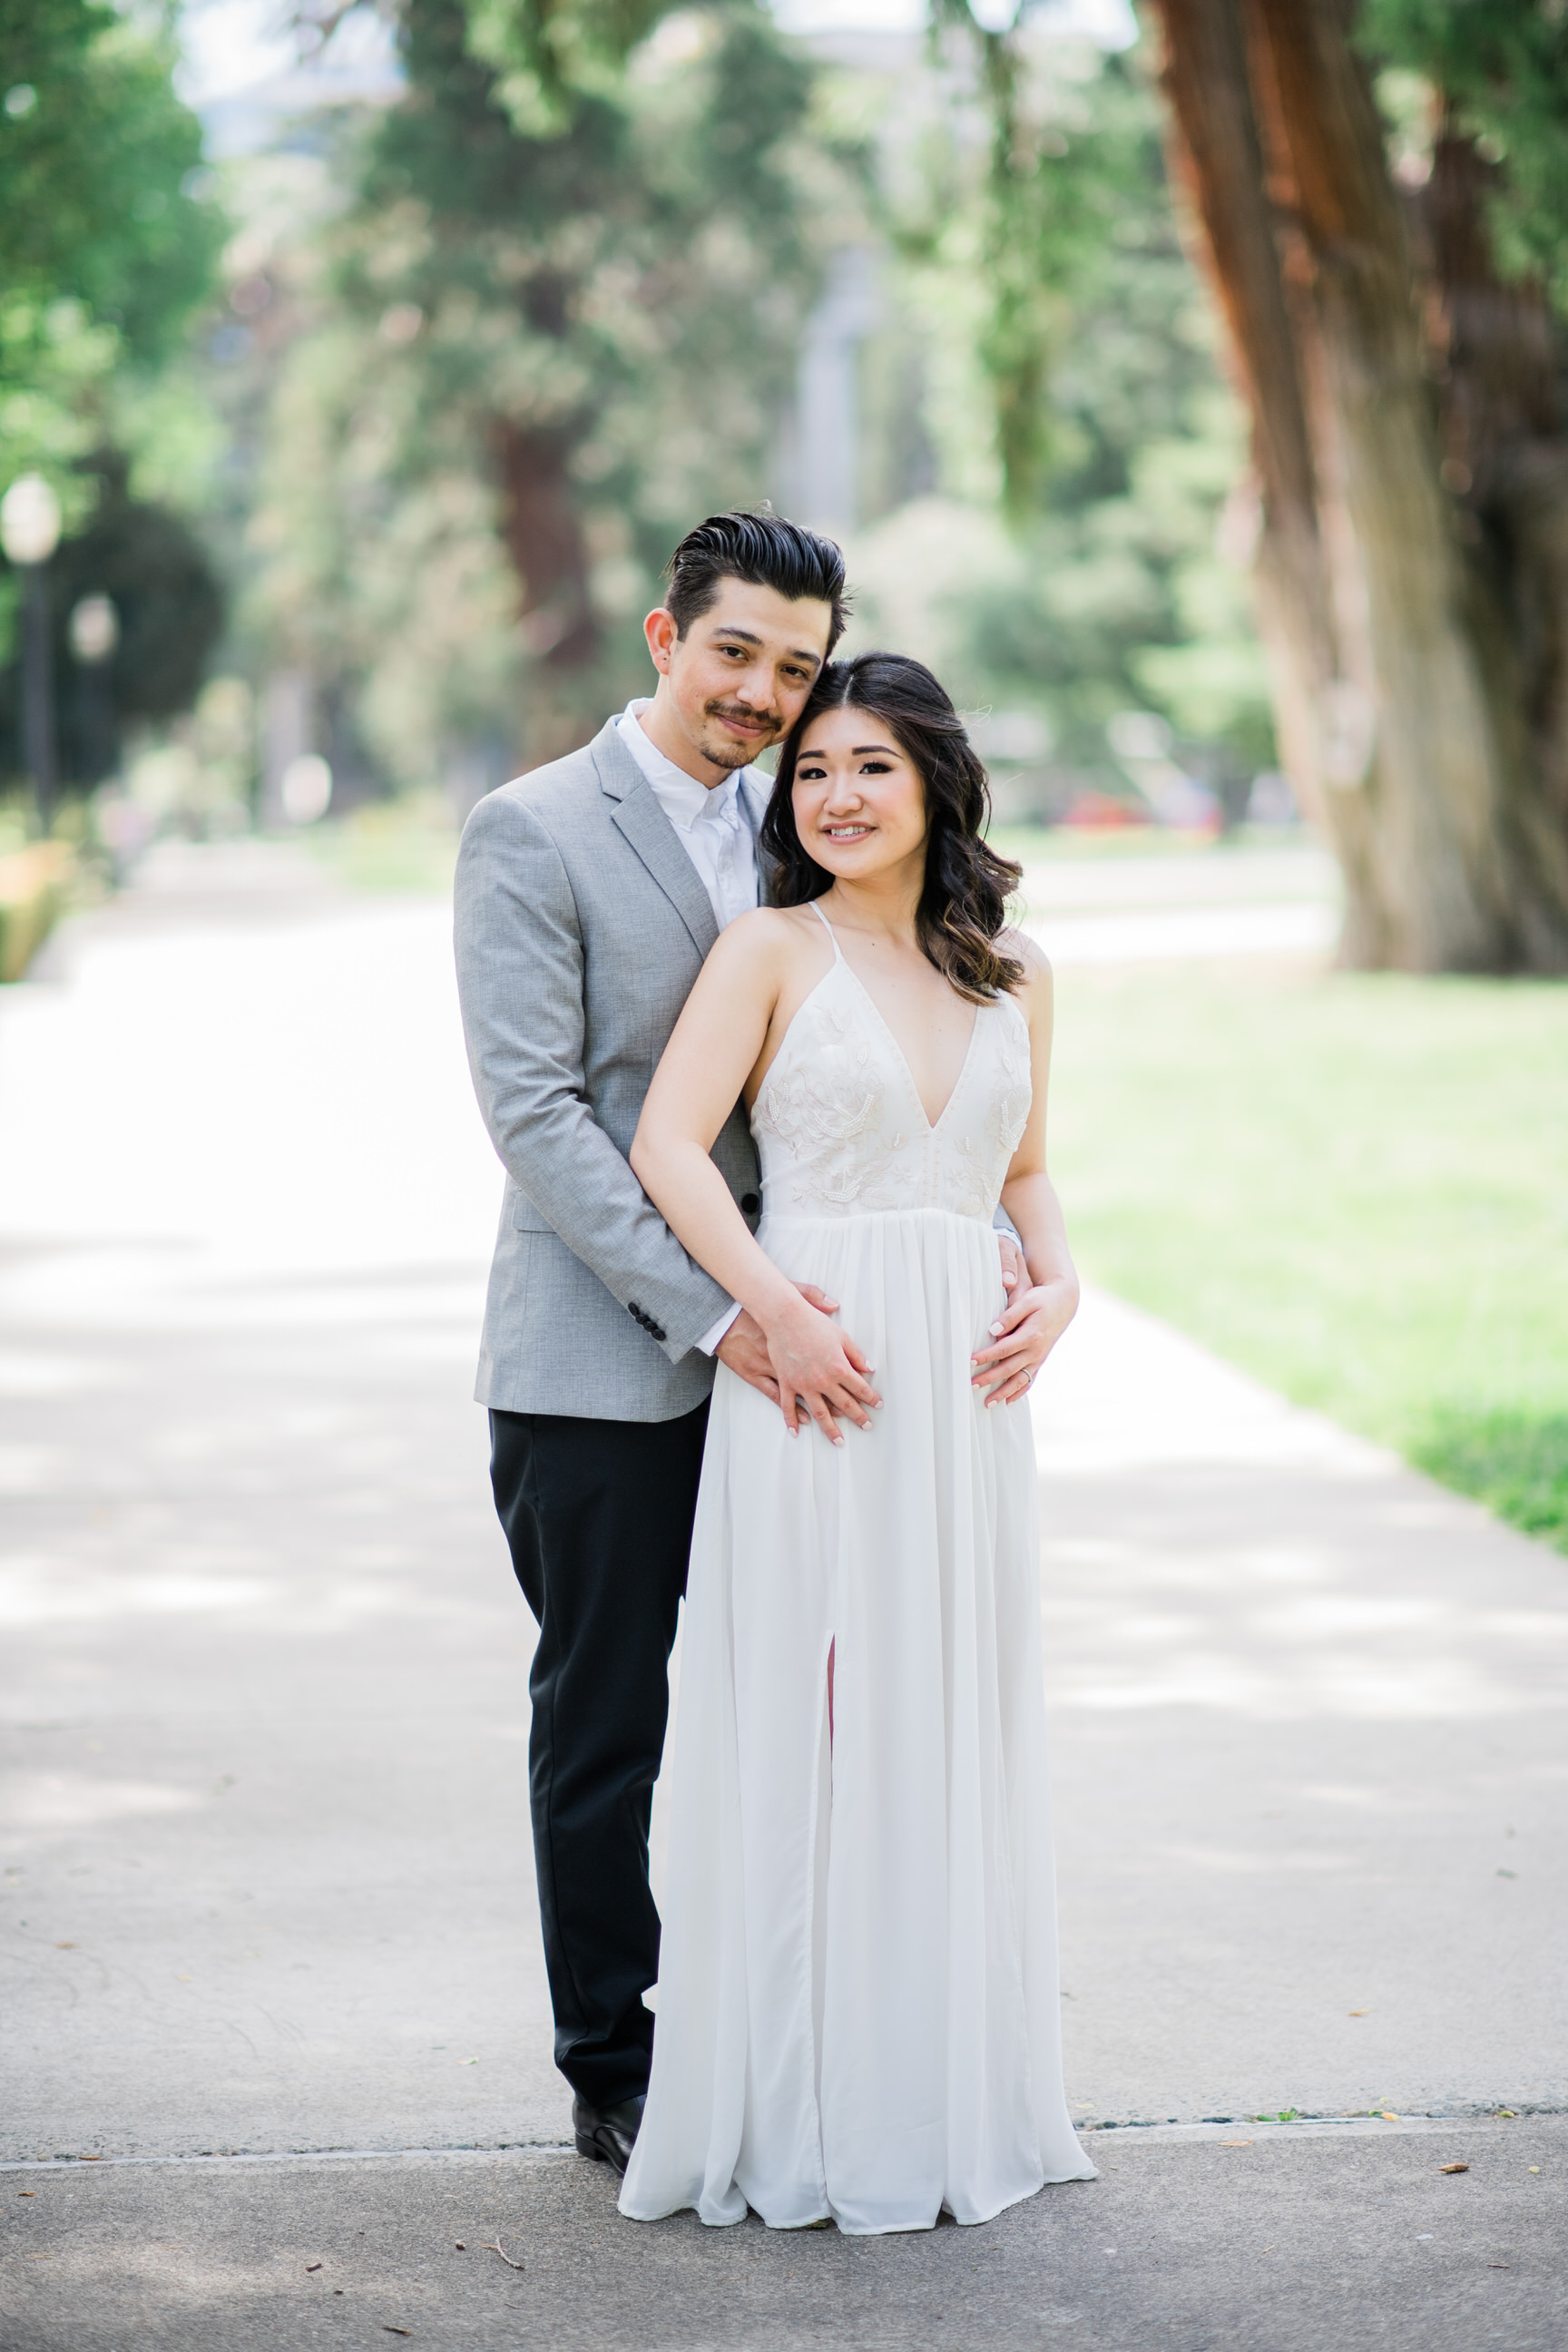 EngagementsLinda + Juan - Linda & Juan's Beautiful engagement session around Sacramento! Click below to see more!